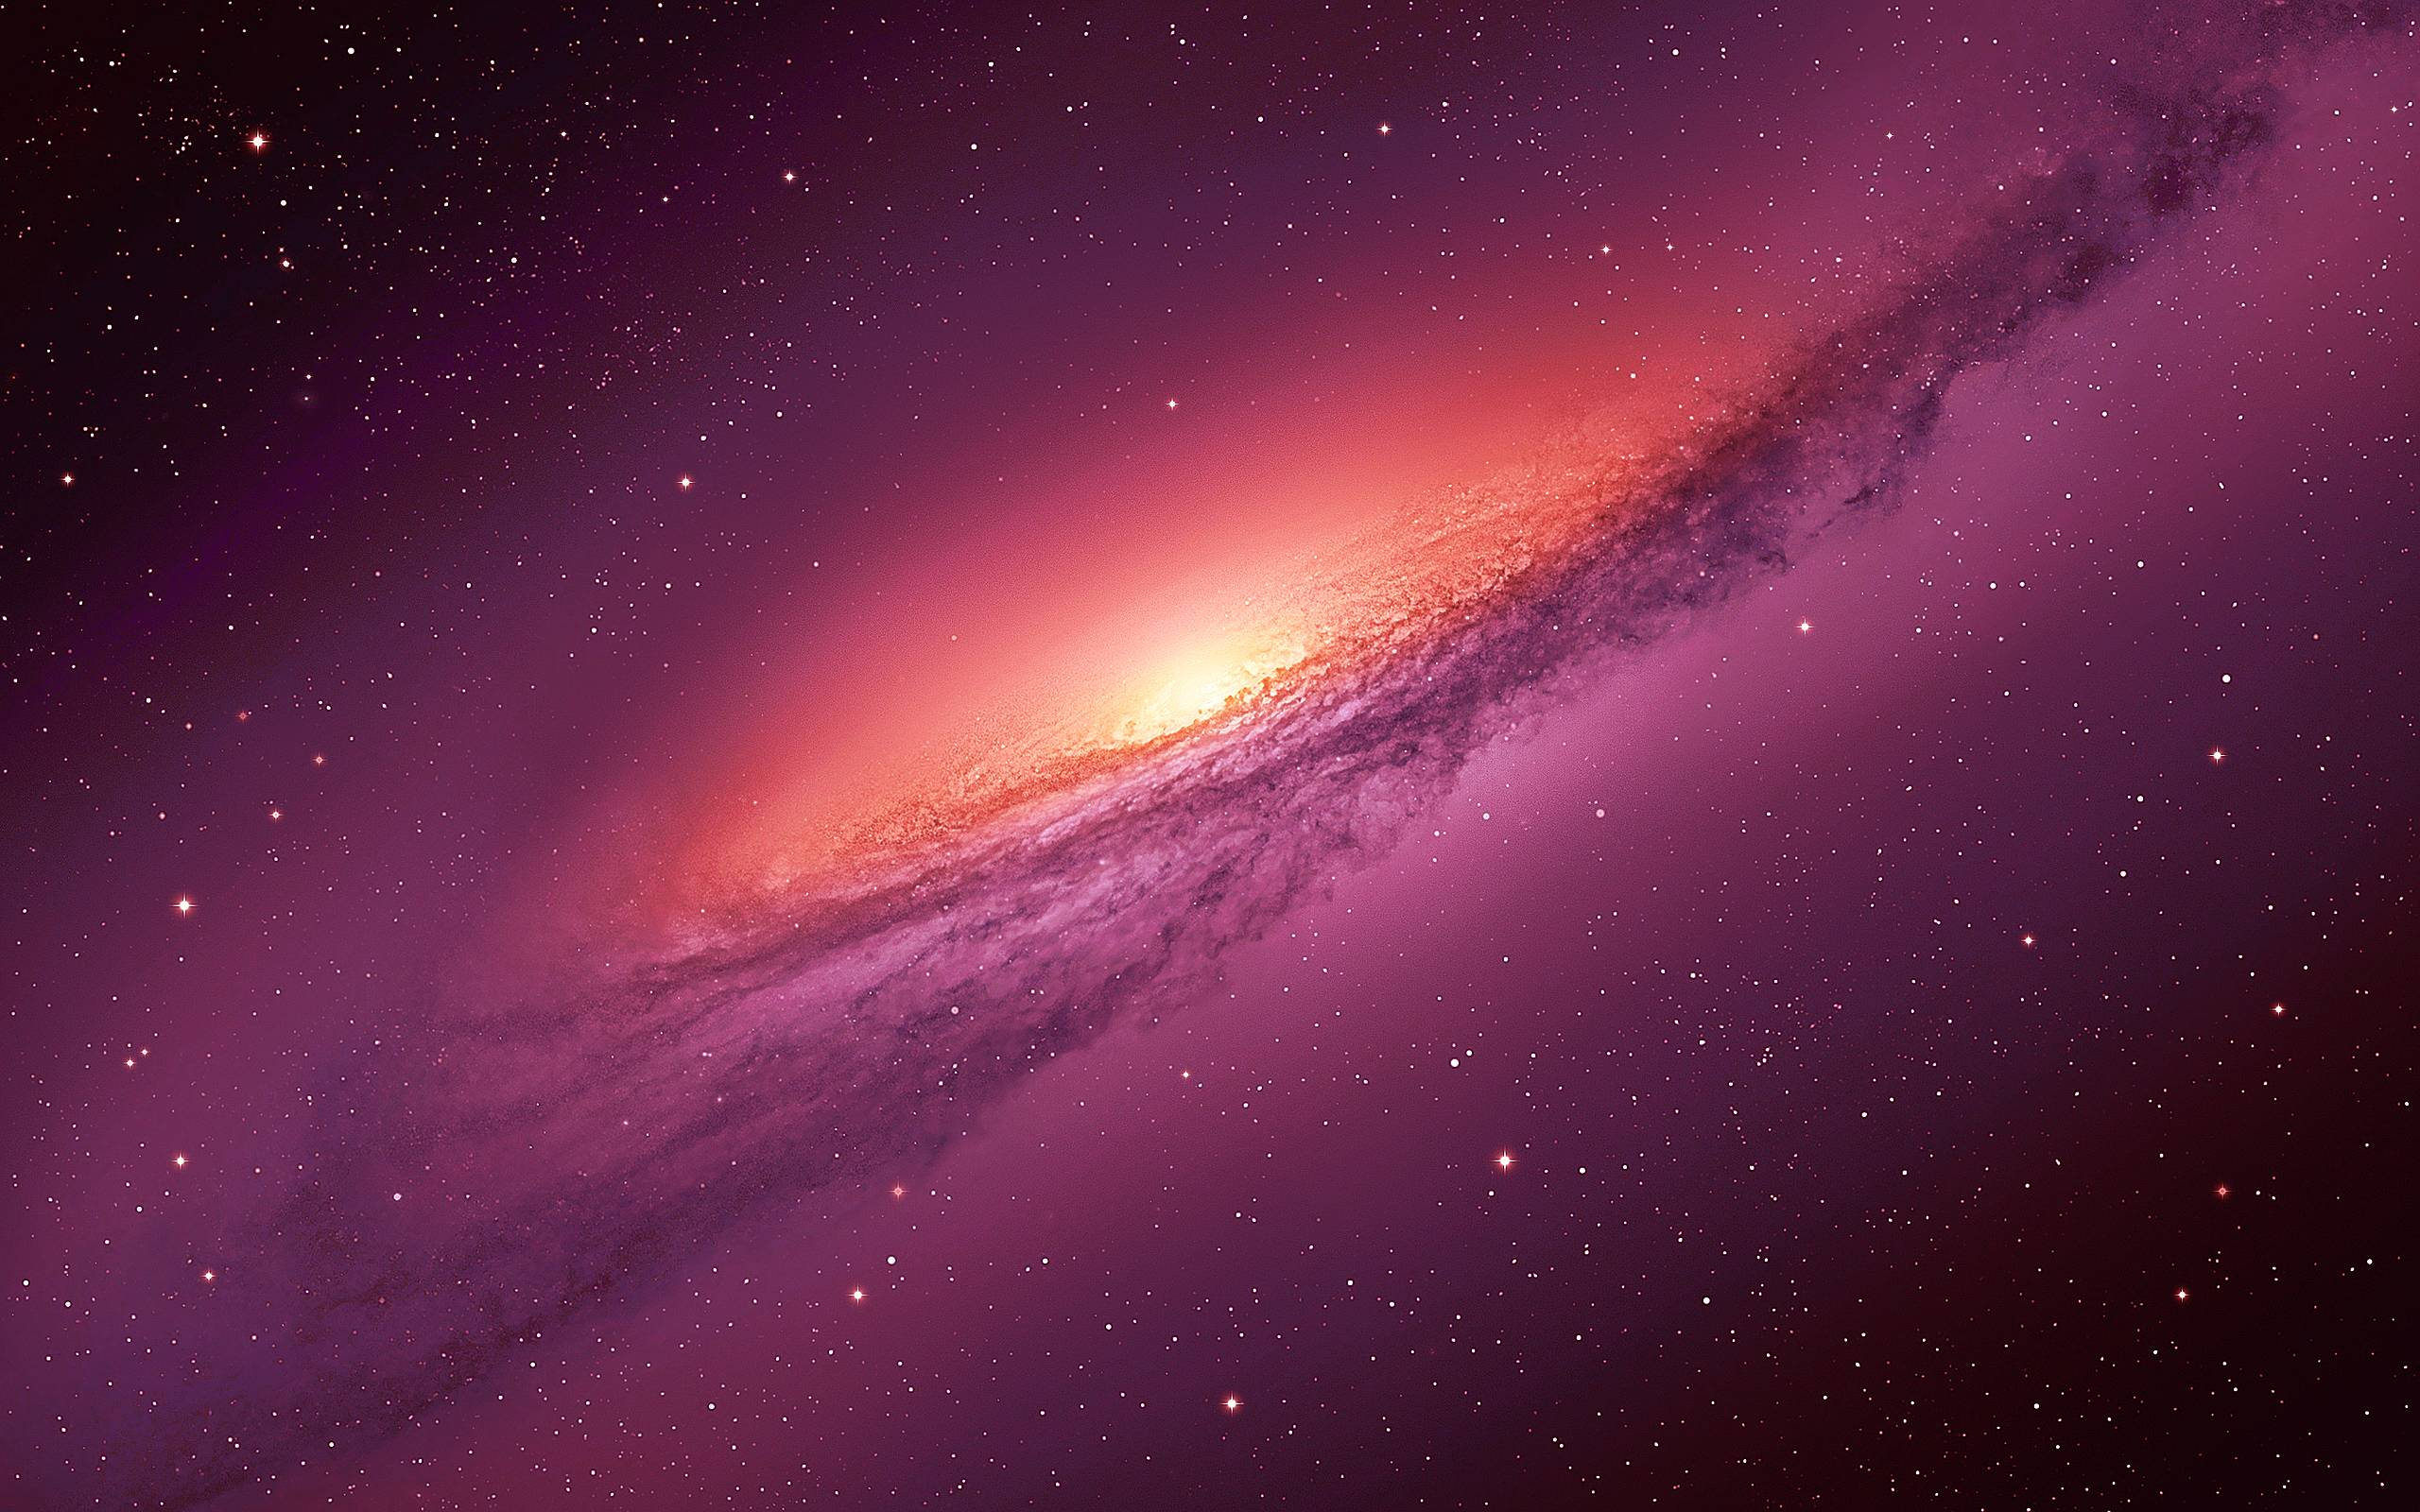 Infinity Universe Wallpapers - Top Free Infinity Universe